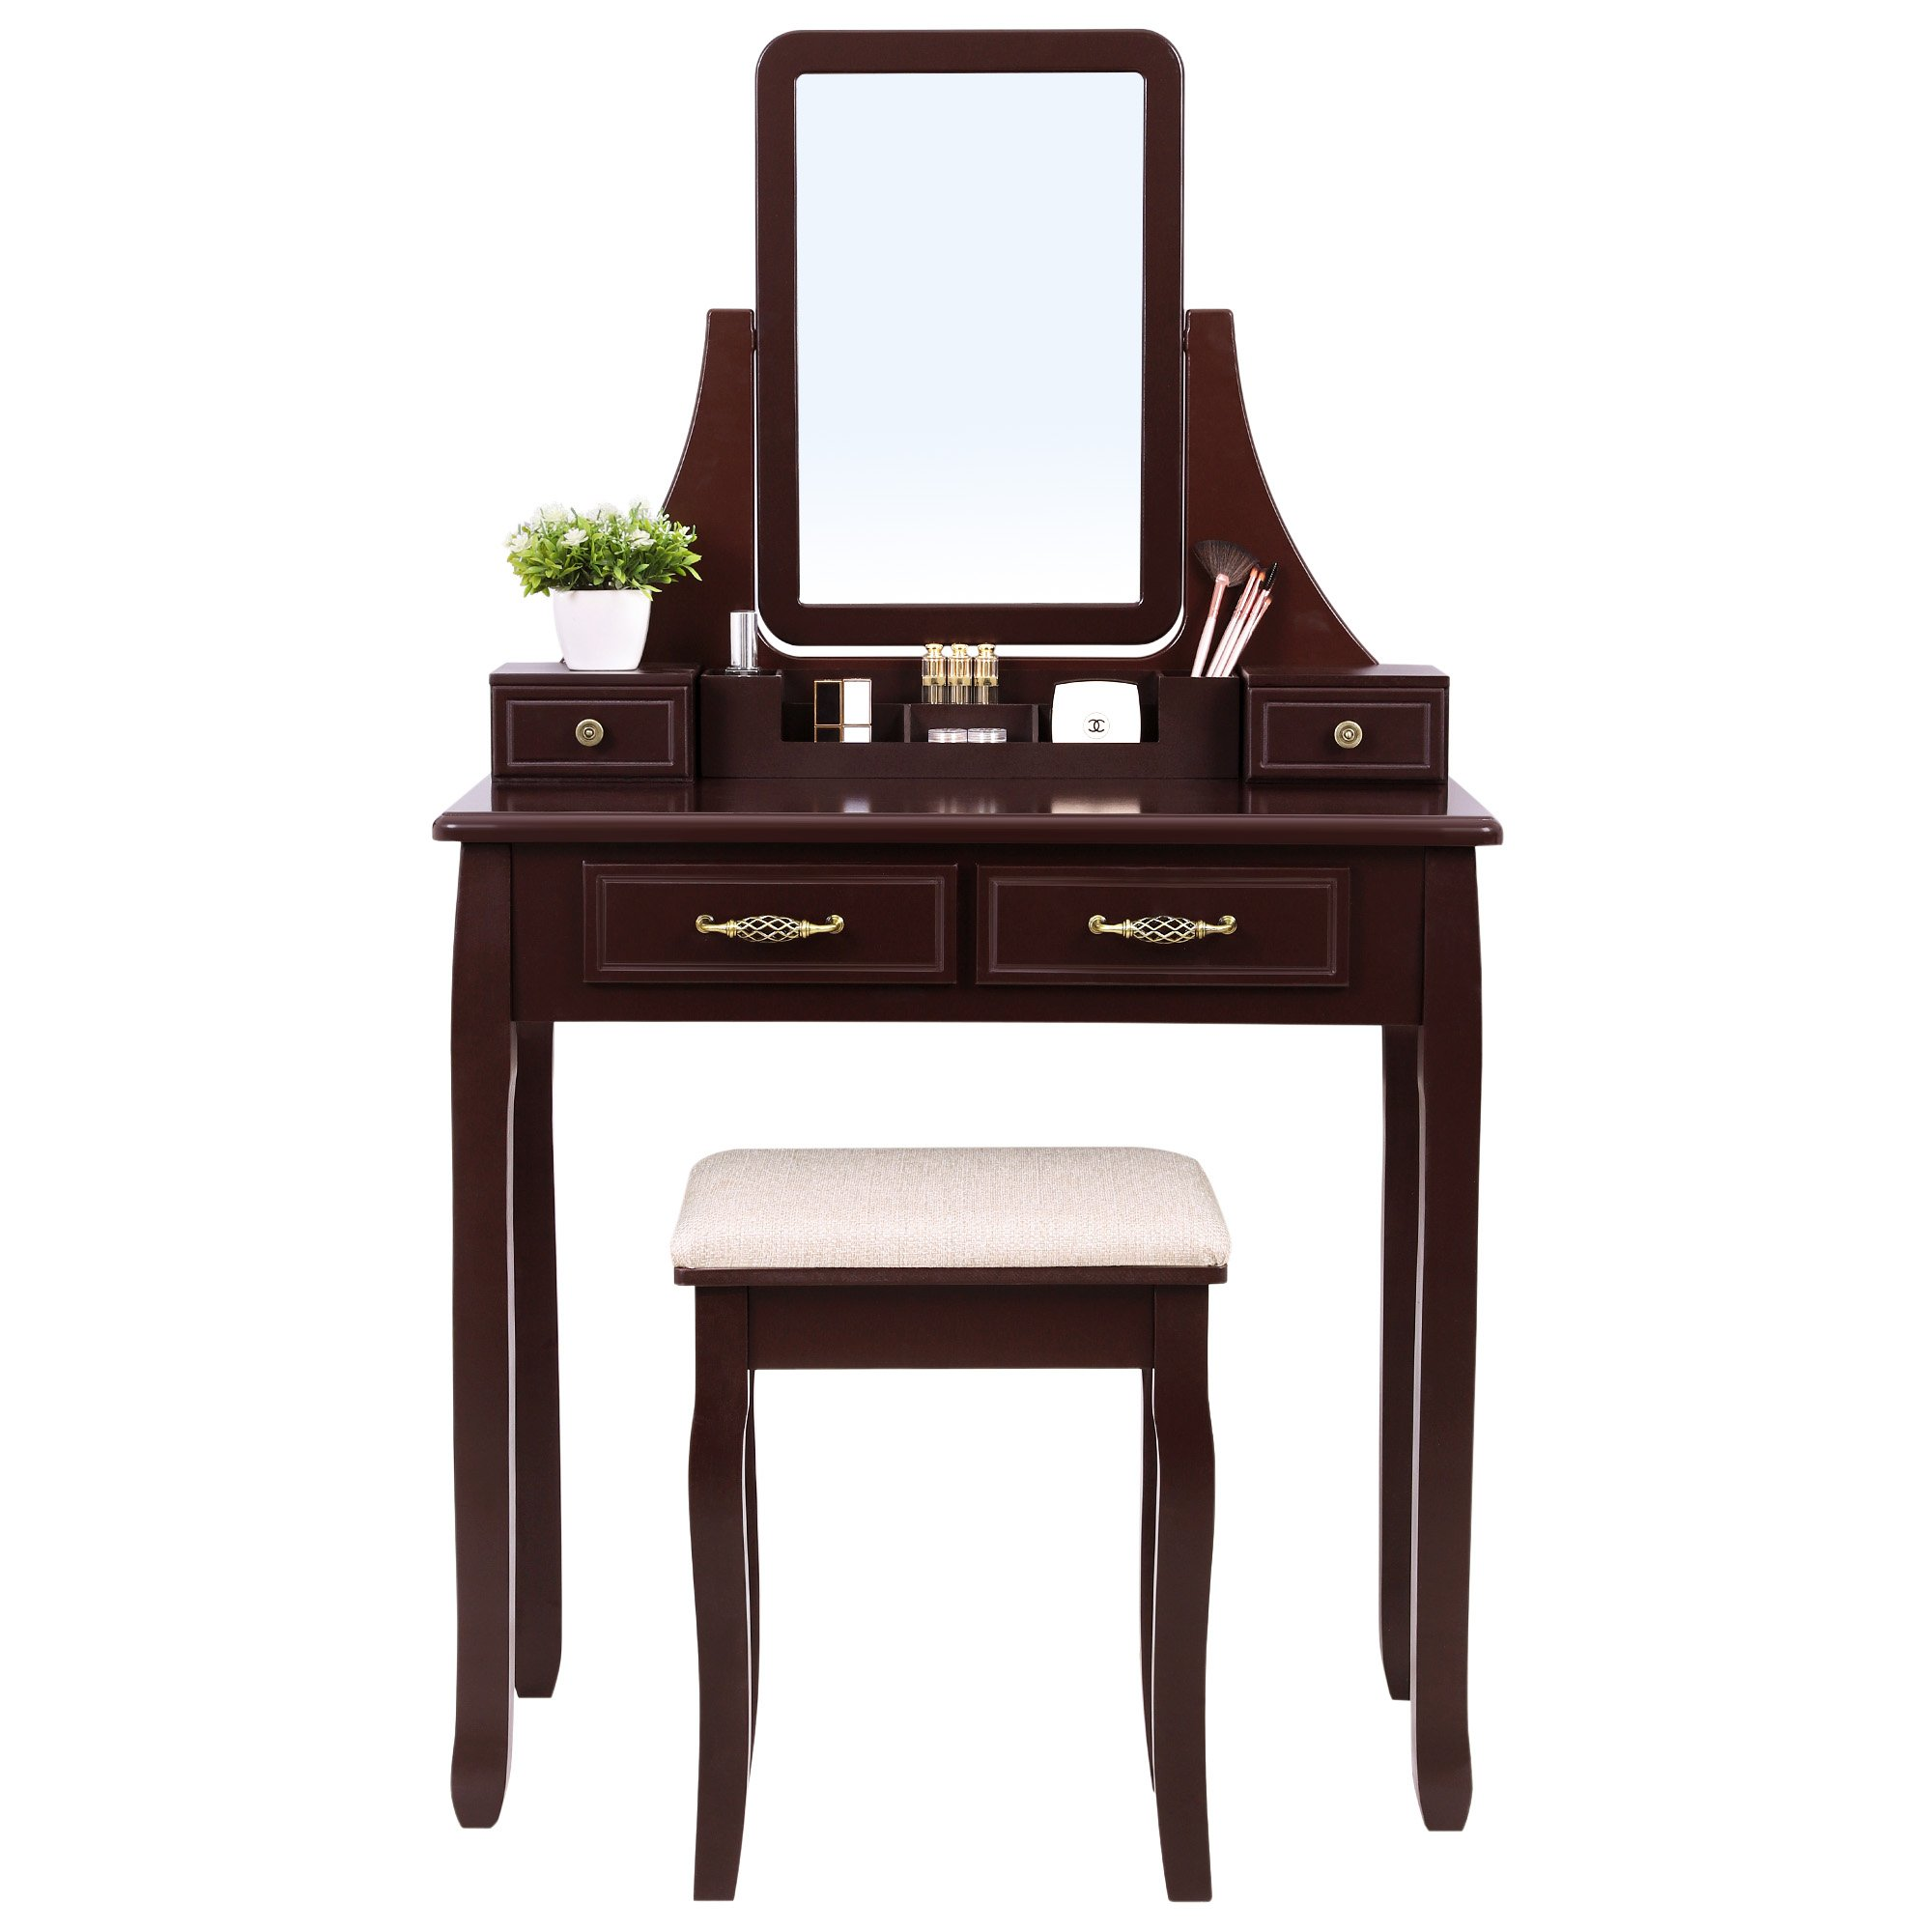 SONGMICS Vanity Set with Mirror 2 Large Sliding Drawers Makeup Dressing Table with Stool 6 Removable Organizers Brown URDT12K by SONGMICS